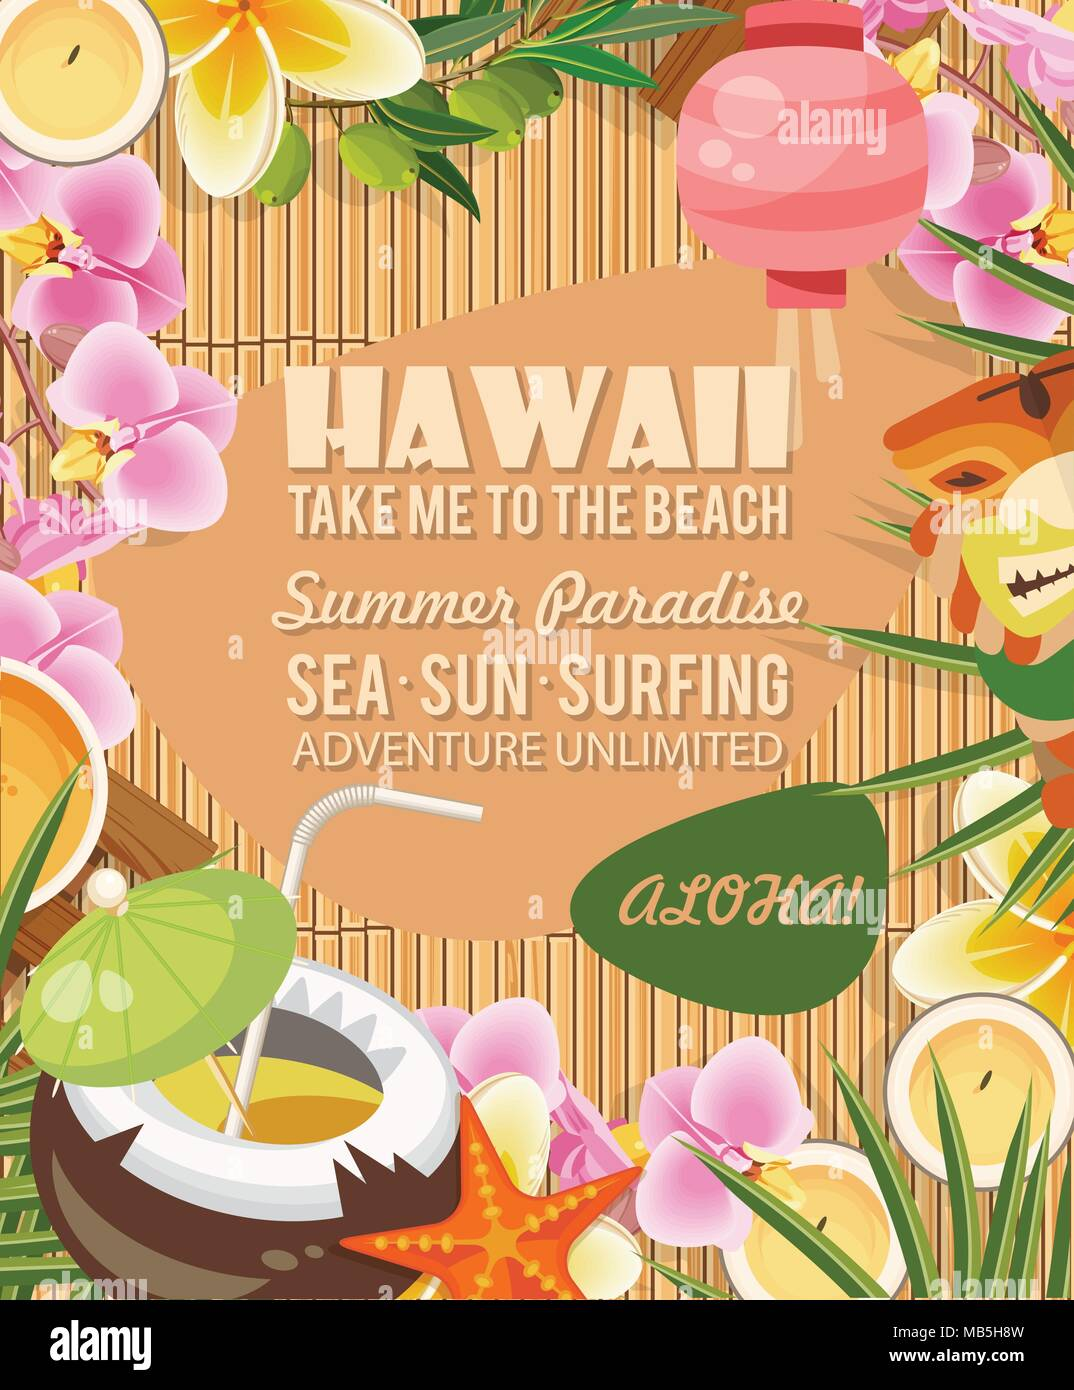 hawaii vector travel illustration with colorful background summer